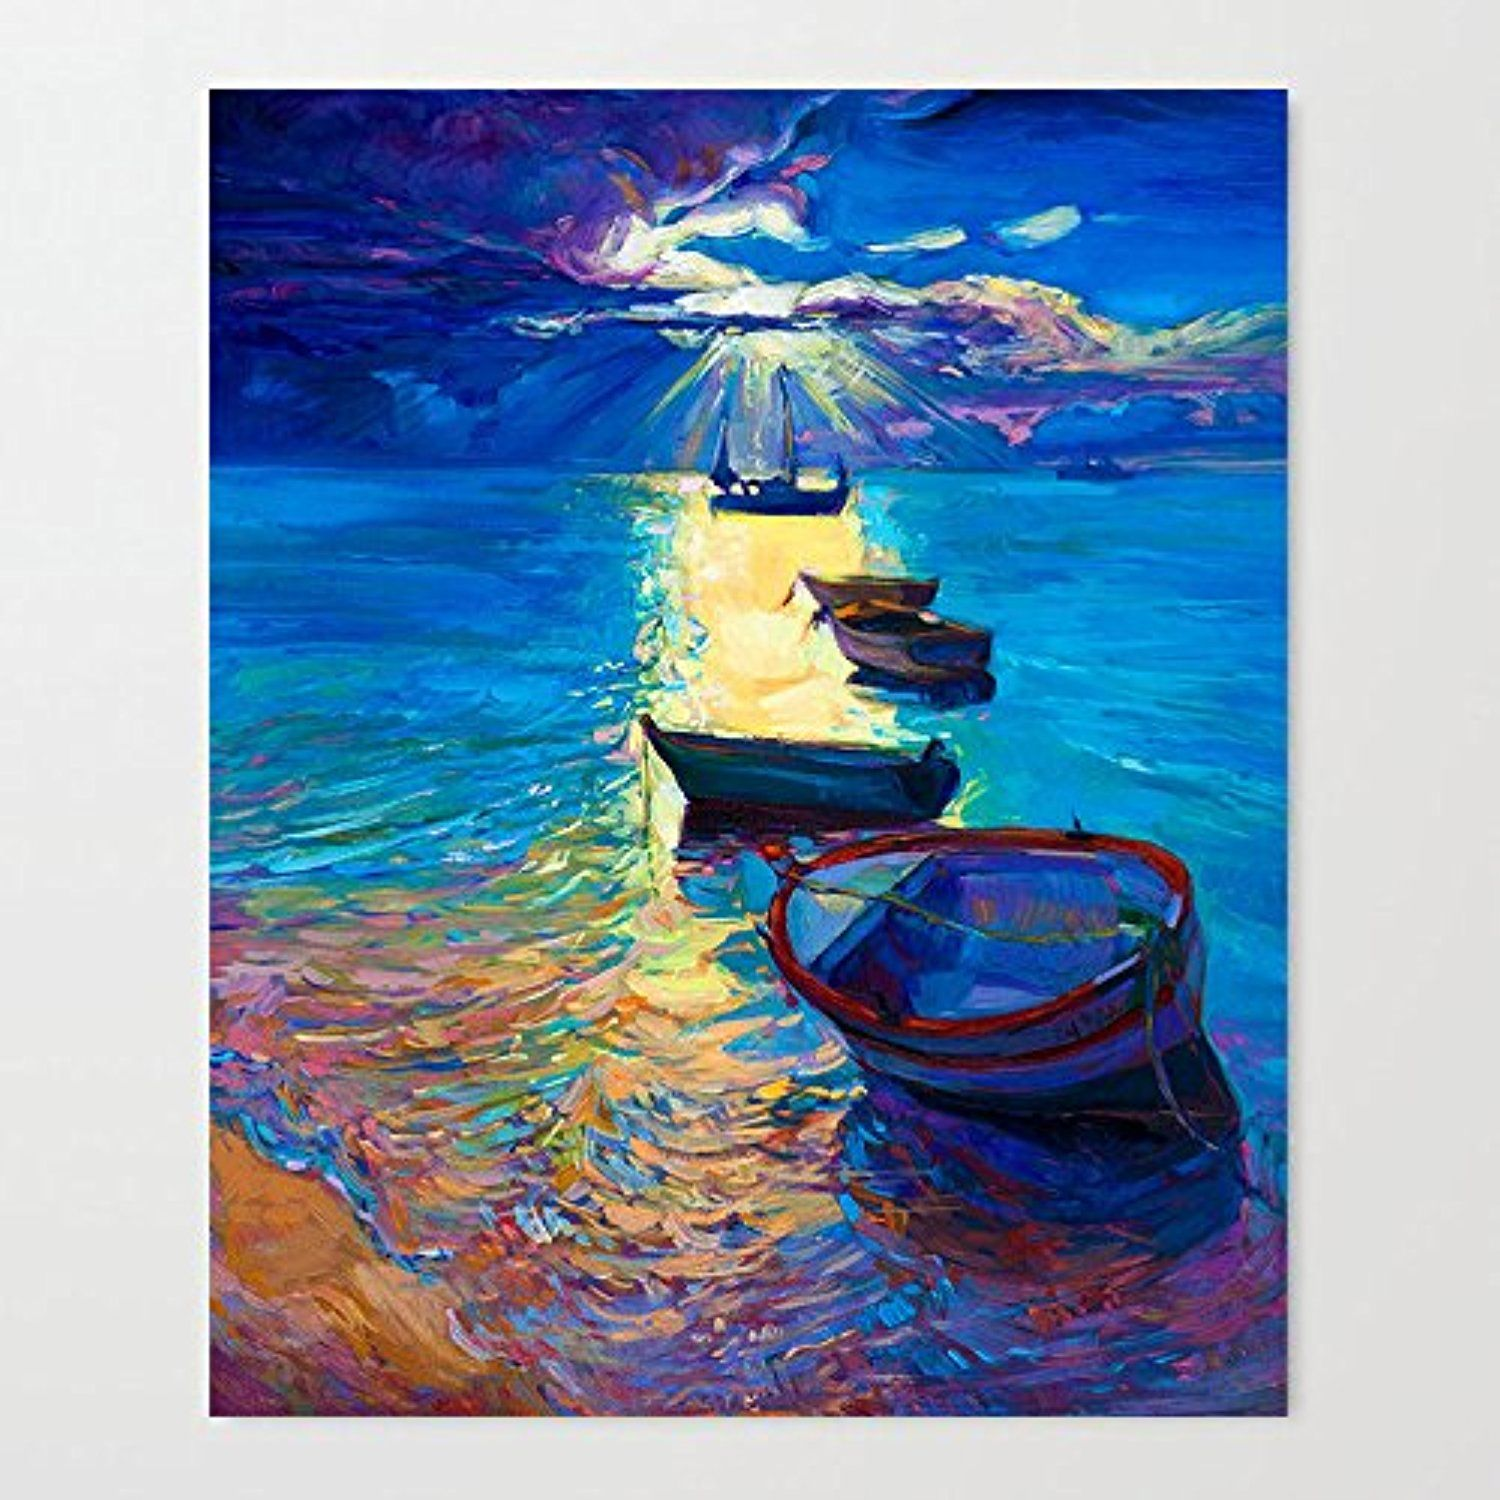 Sunningq Oil Painting Sea Scenery Wood Frame Canvas Prints 12